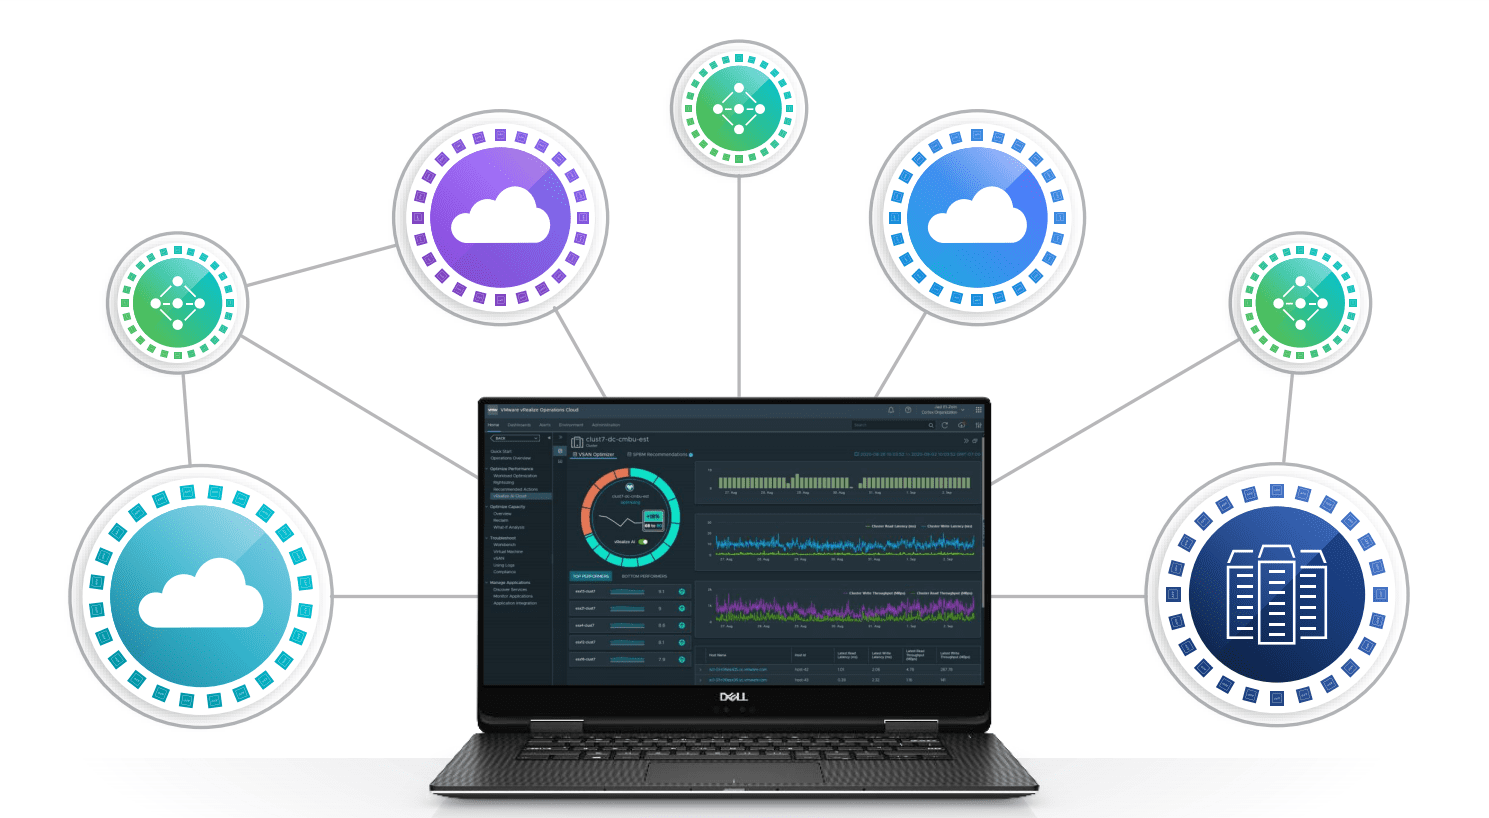 New vmware cloud announced with cloud universal console and navigator